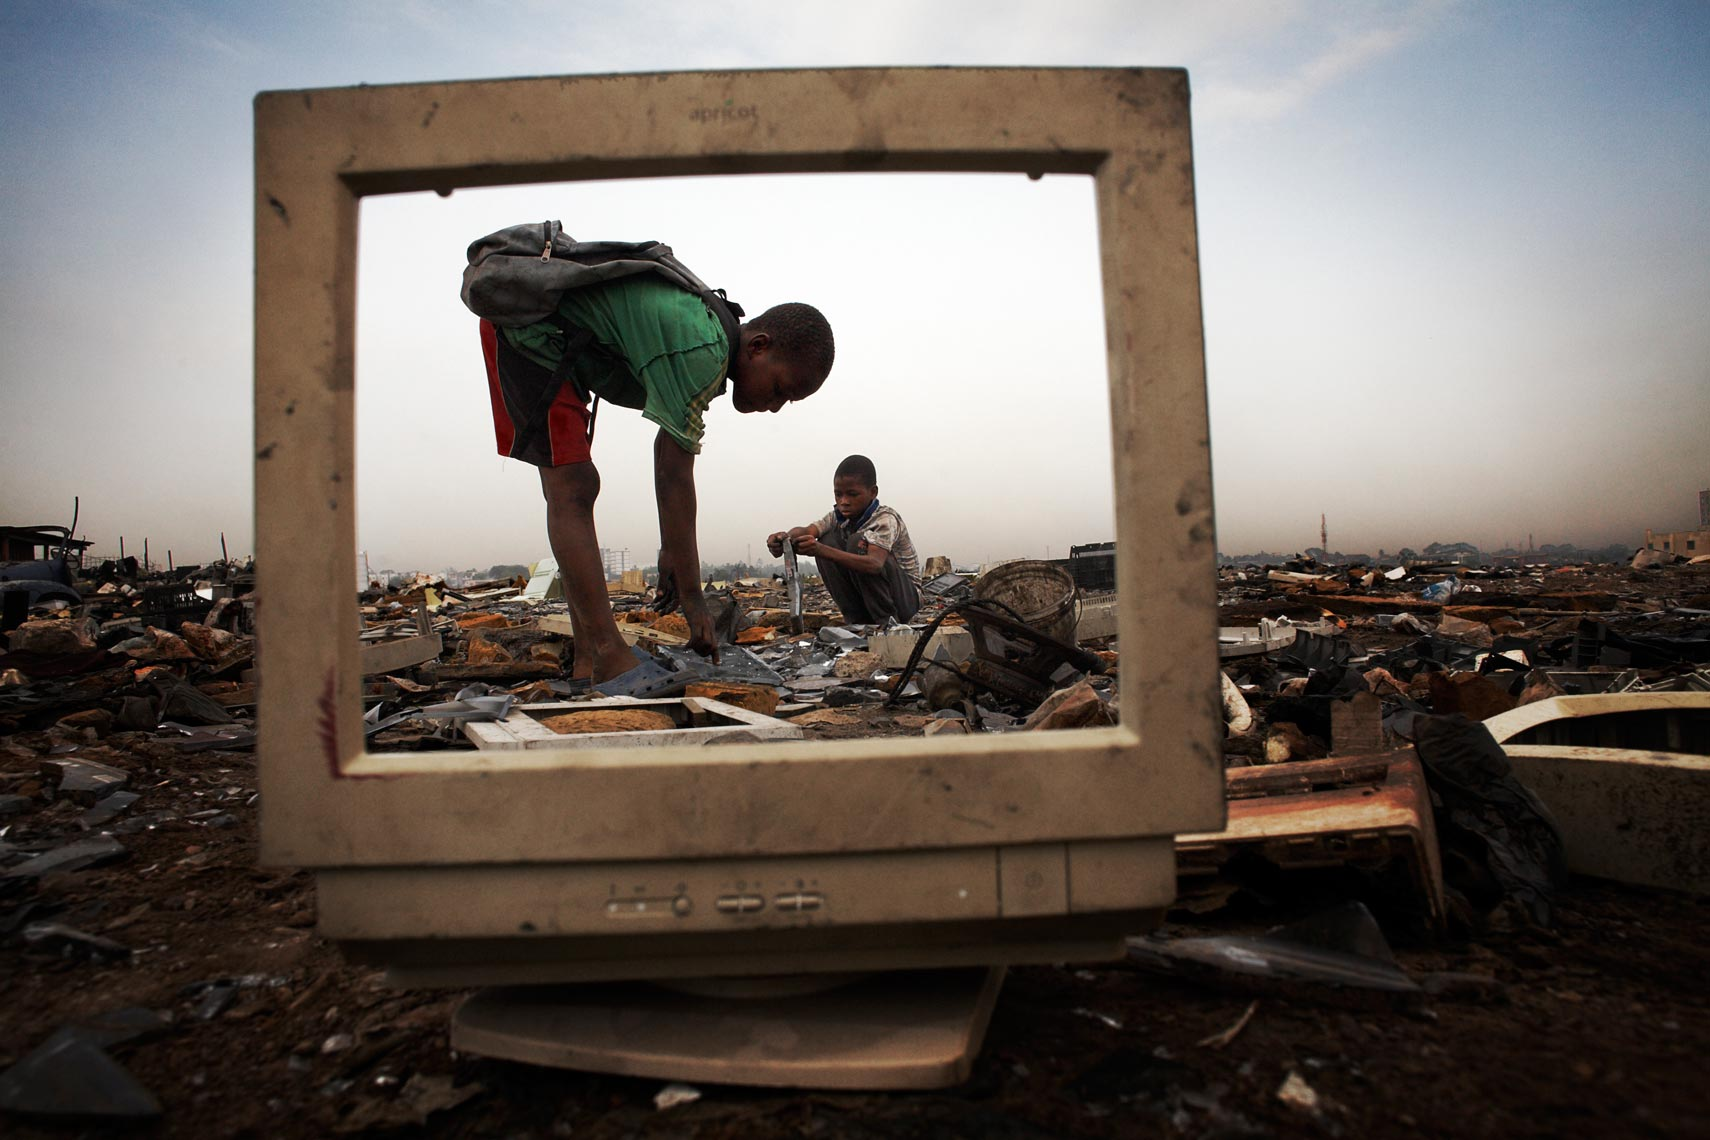 E-Waste Africa